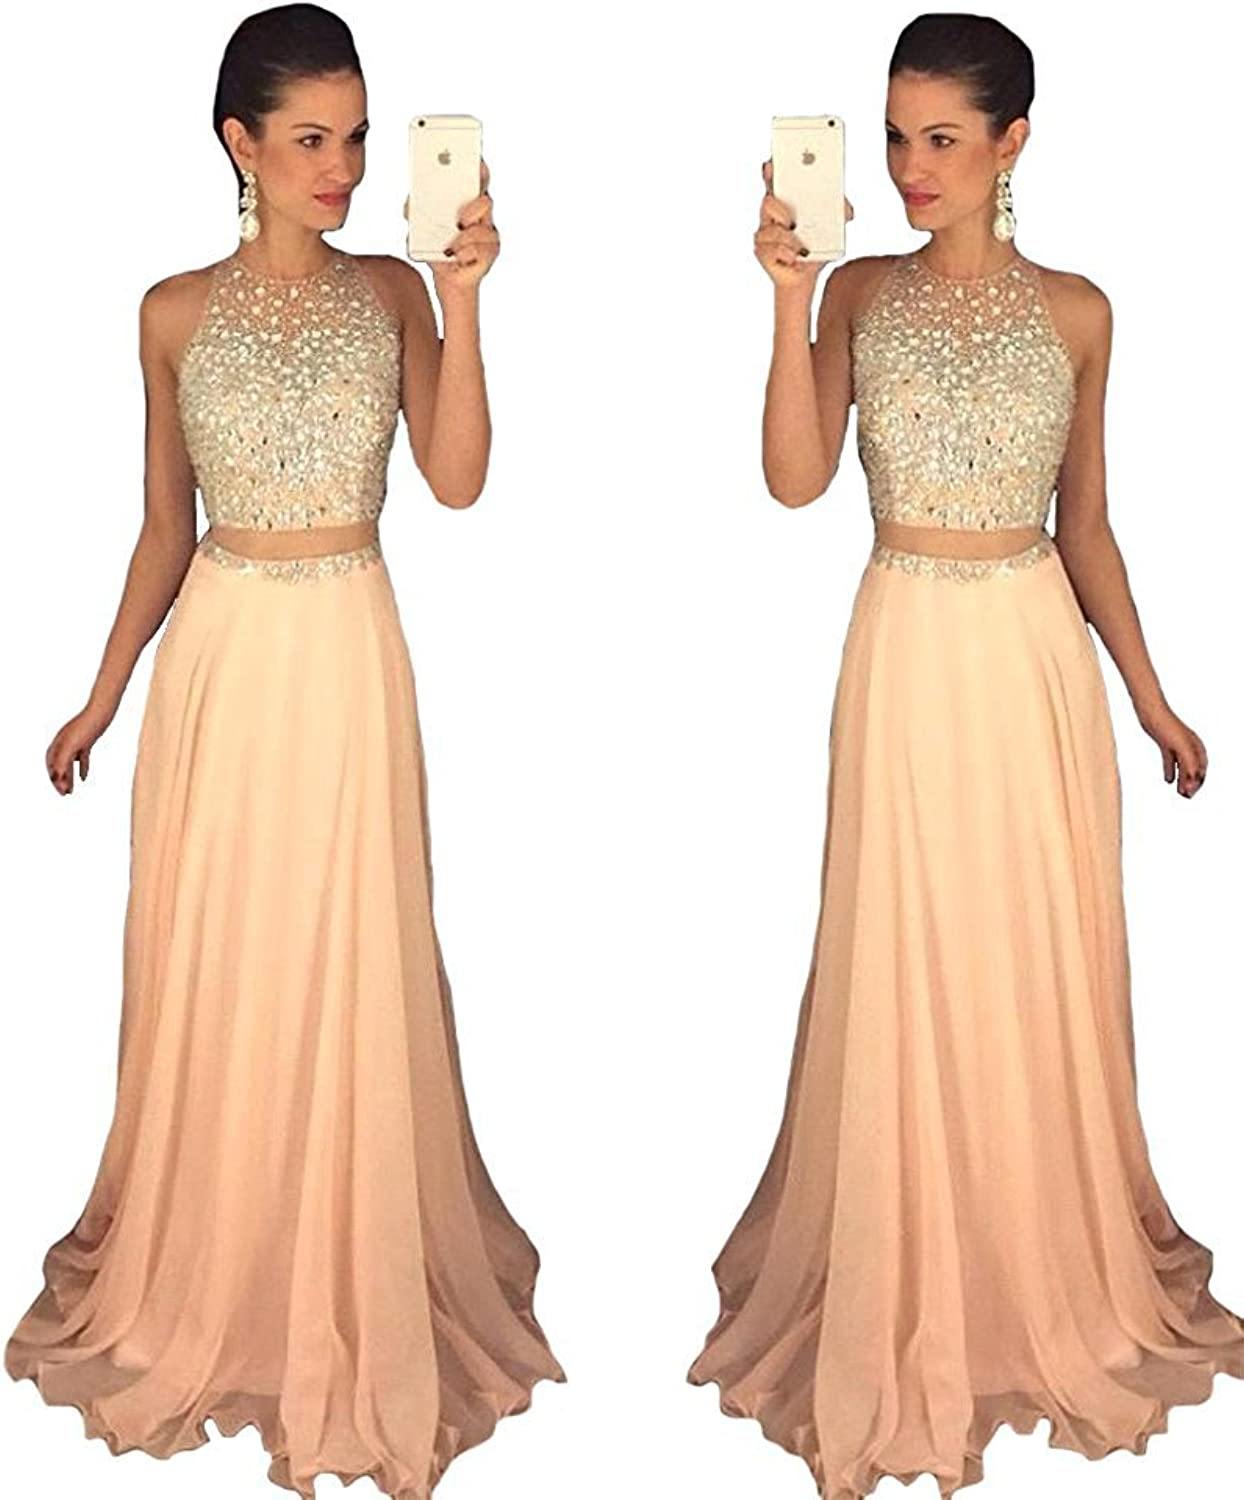 YuNuo 2019 Prom Dresses Beading Prom Dresses Long Evening Gown